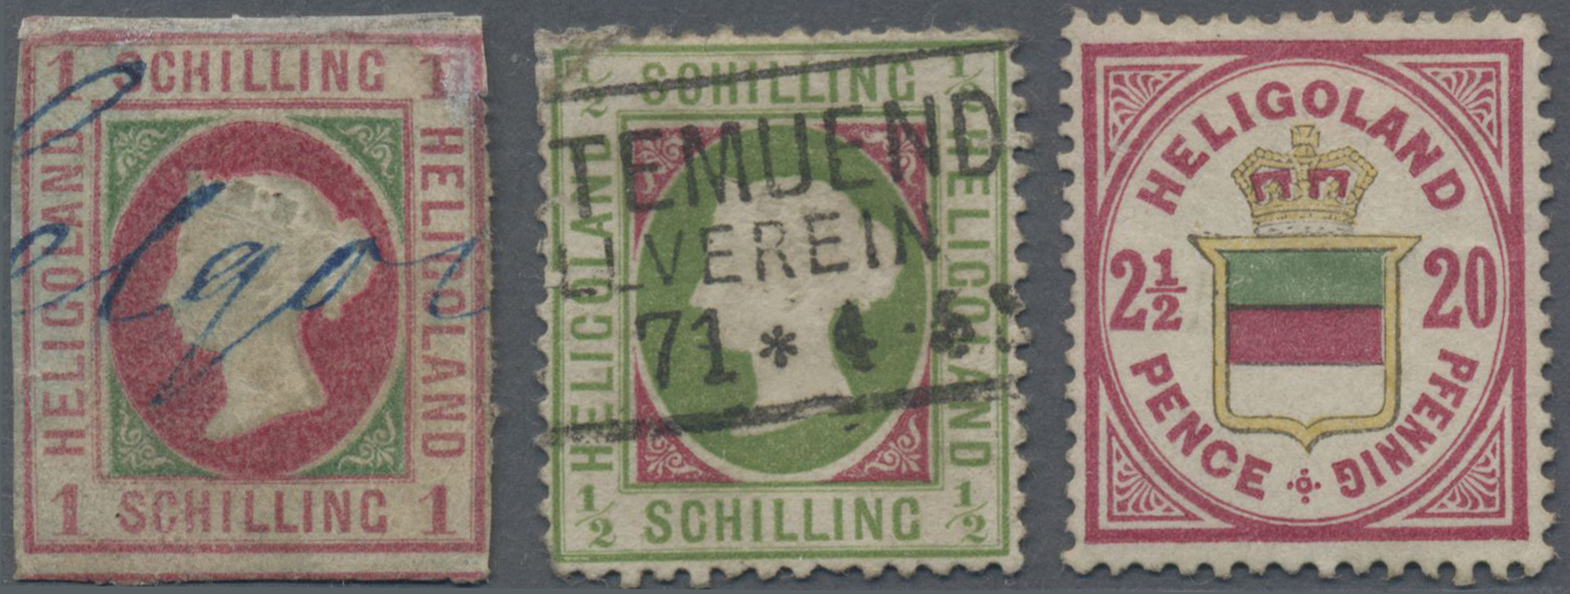 Lot 36257 - Helgoland - Marken und Briefe  -  Auktionshaus Christoph Gärtner GmbH & Co. KG Sale #44 Collections Germany